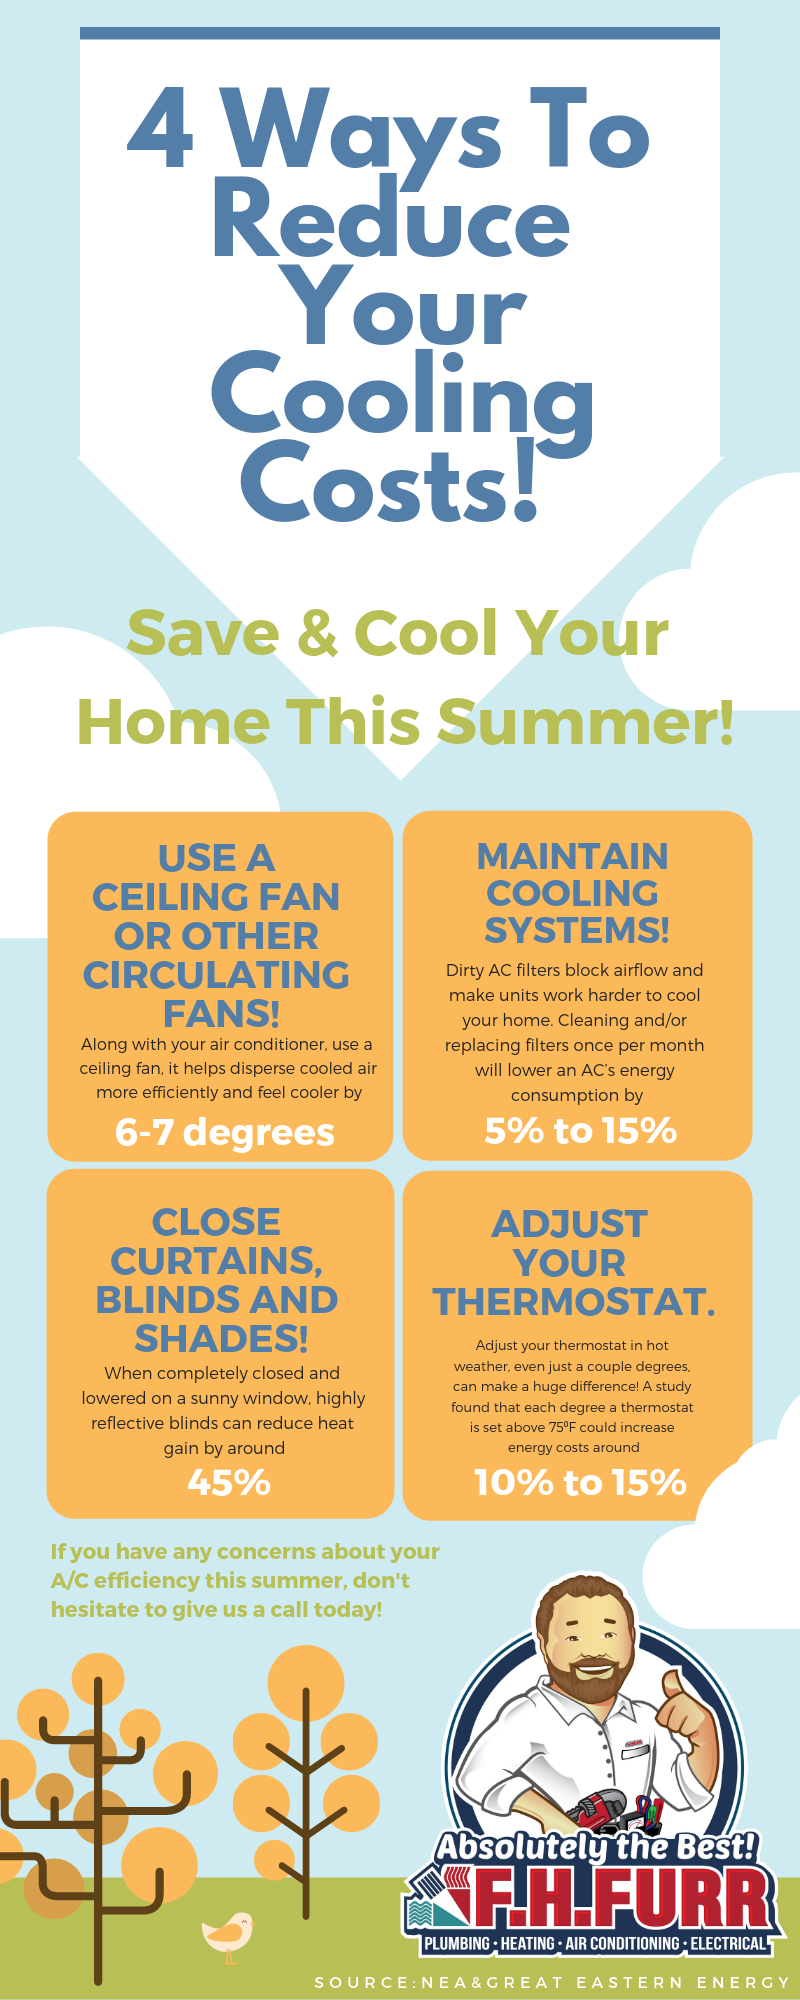 Reduce your cooling cost this summer while also cooling